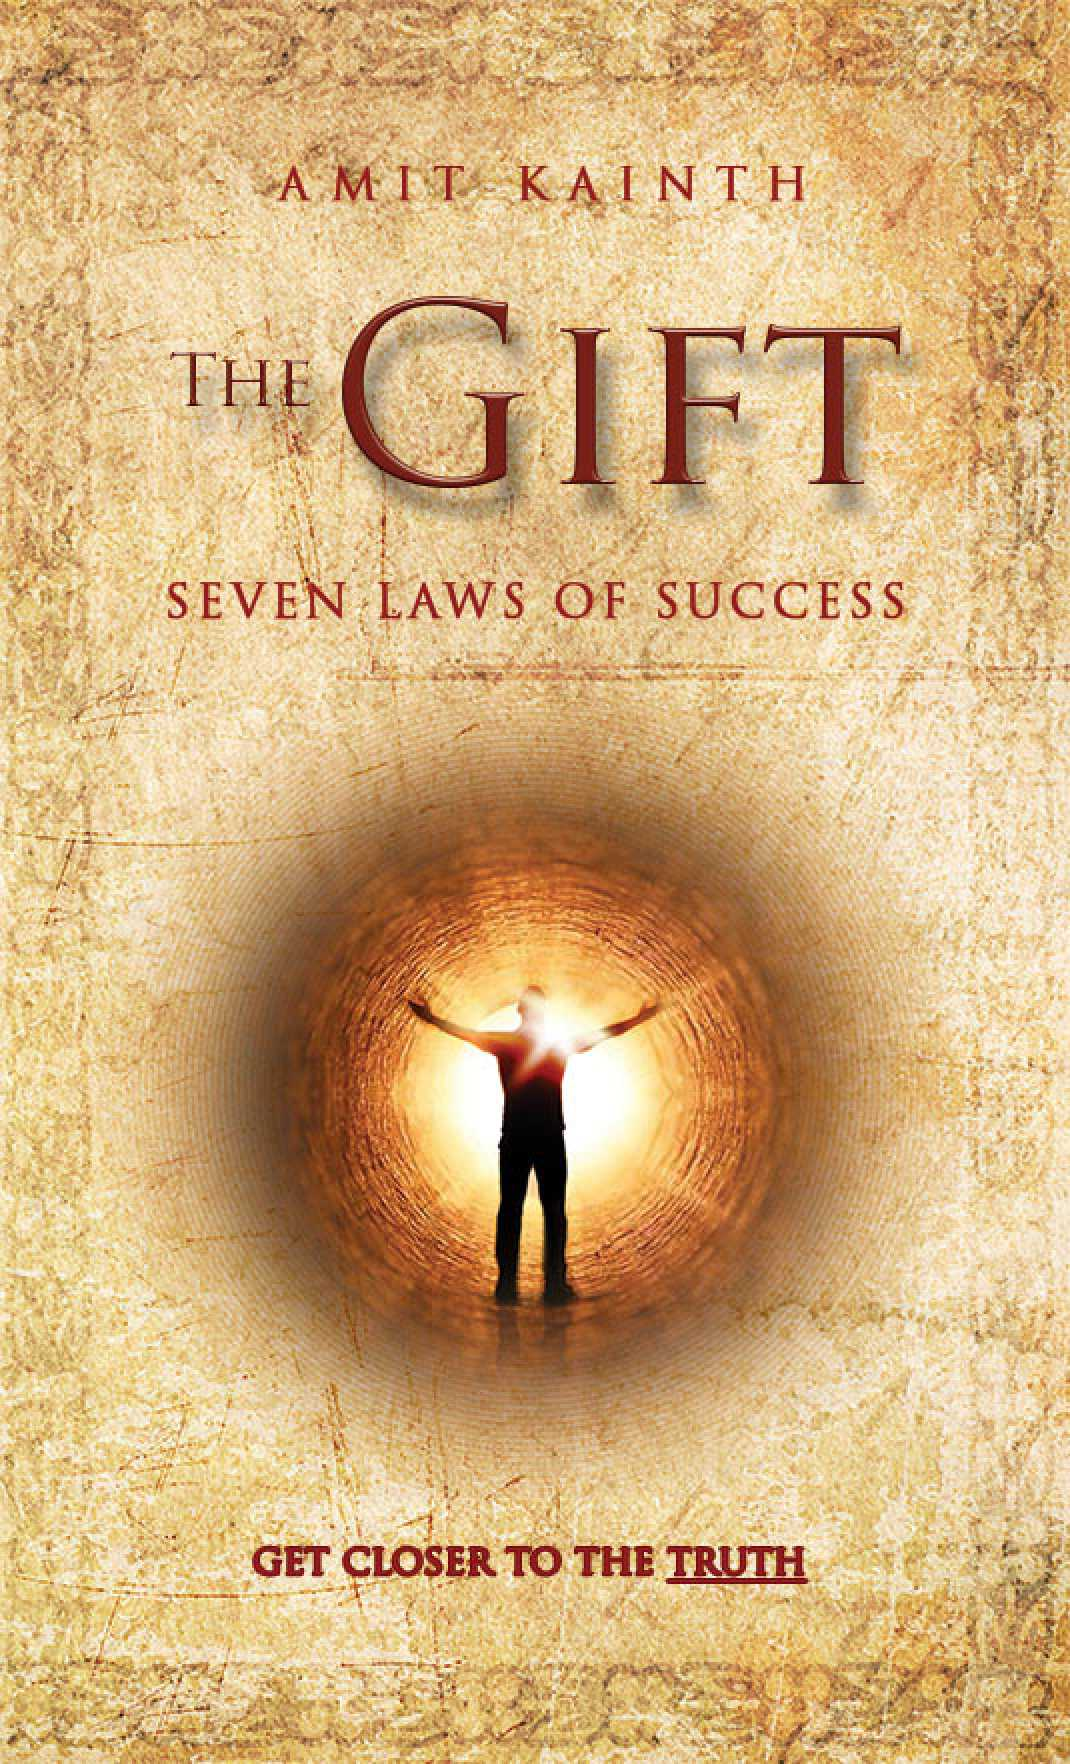 The Gift - The 7 Laws Of Success